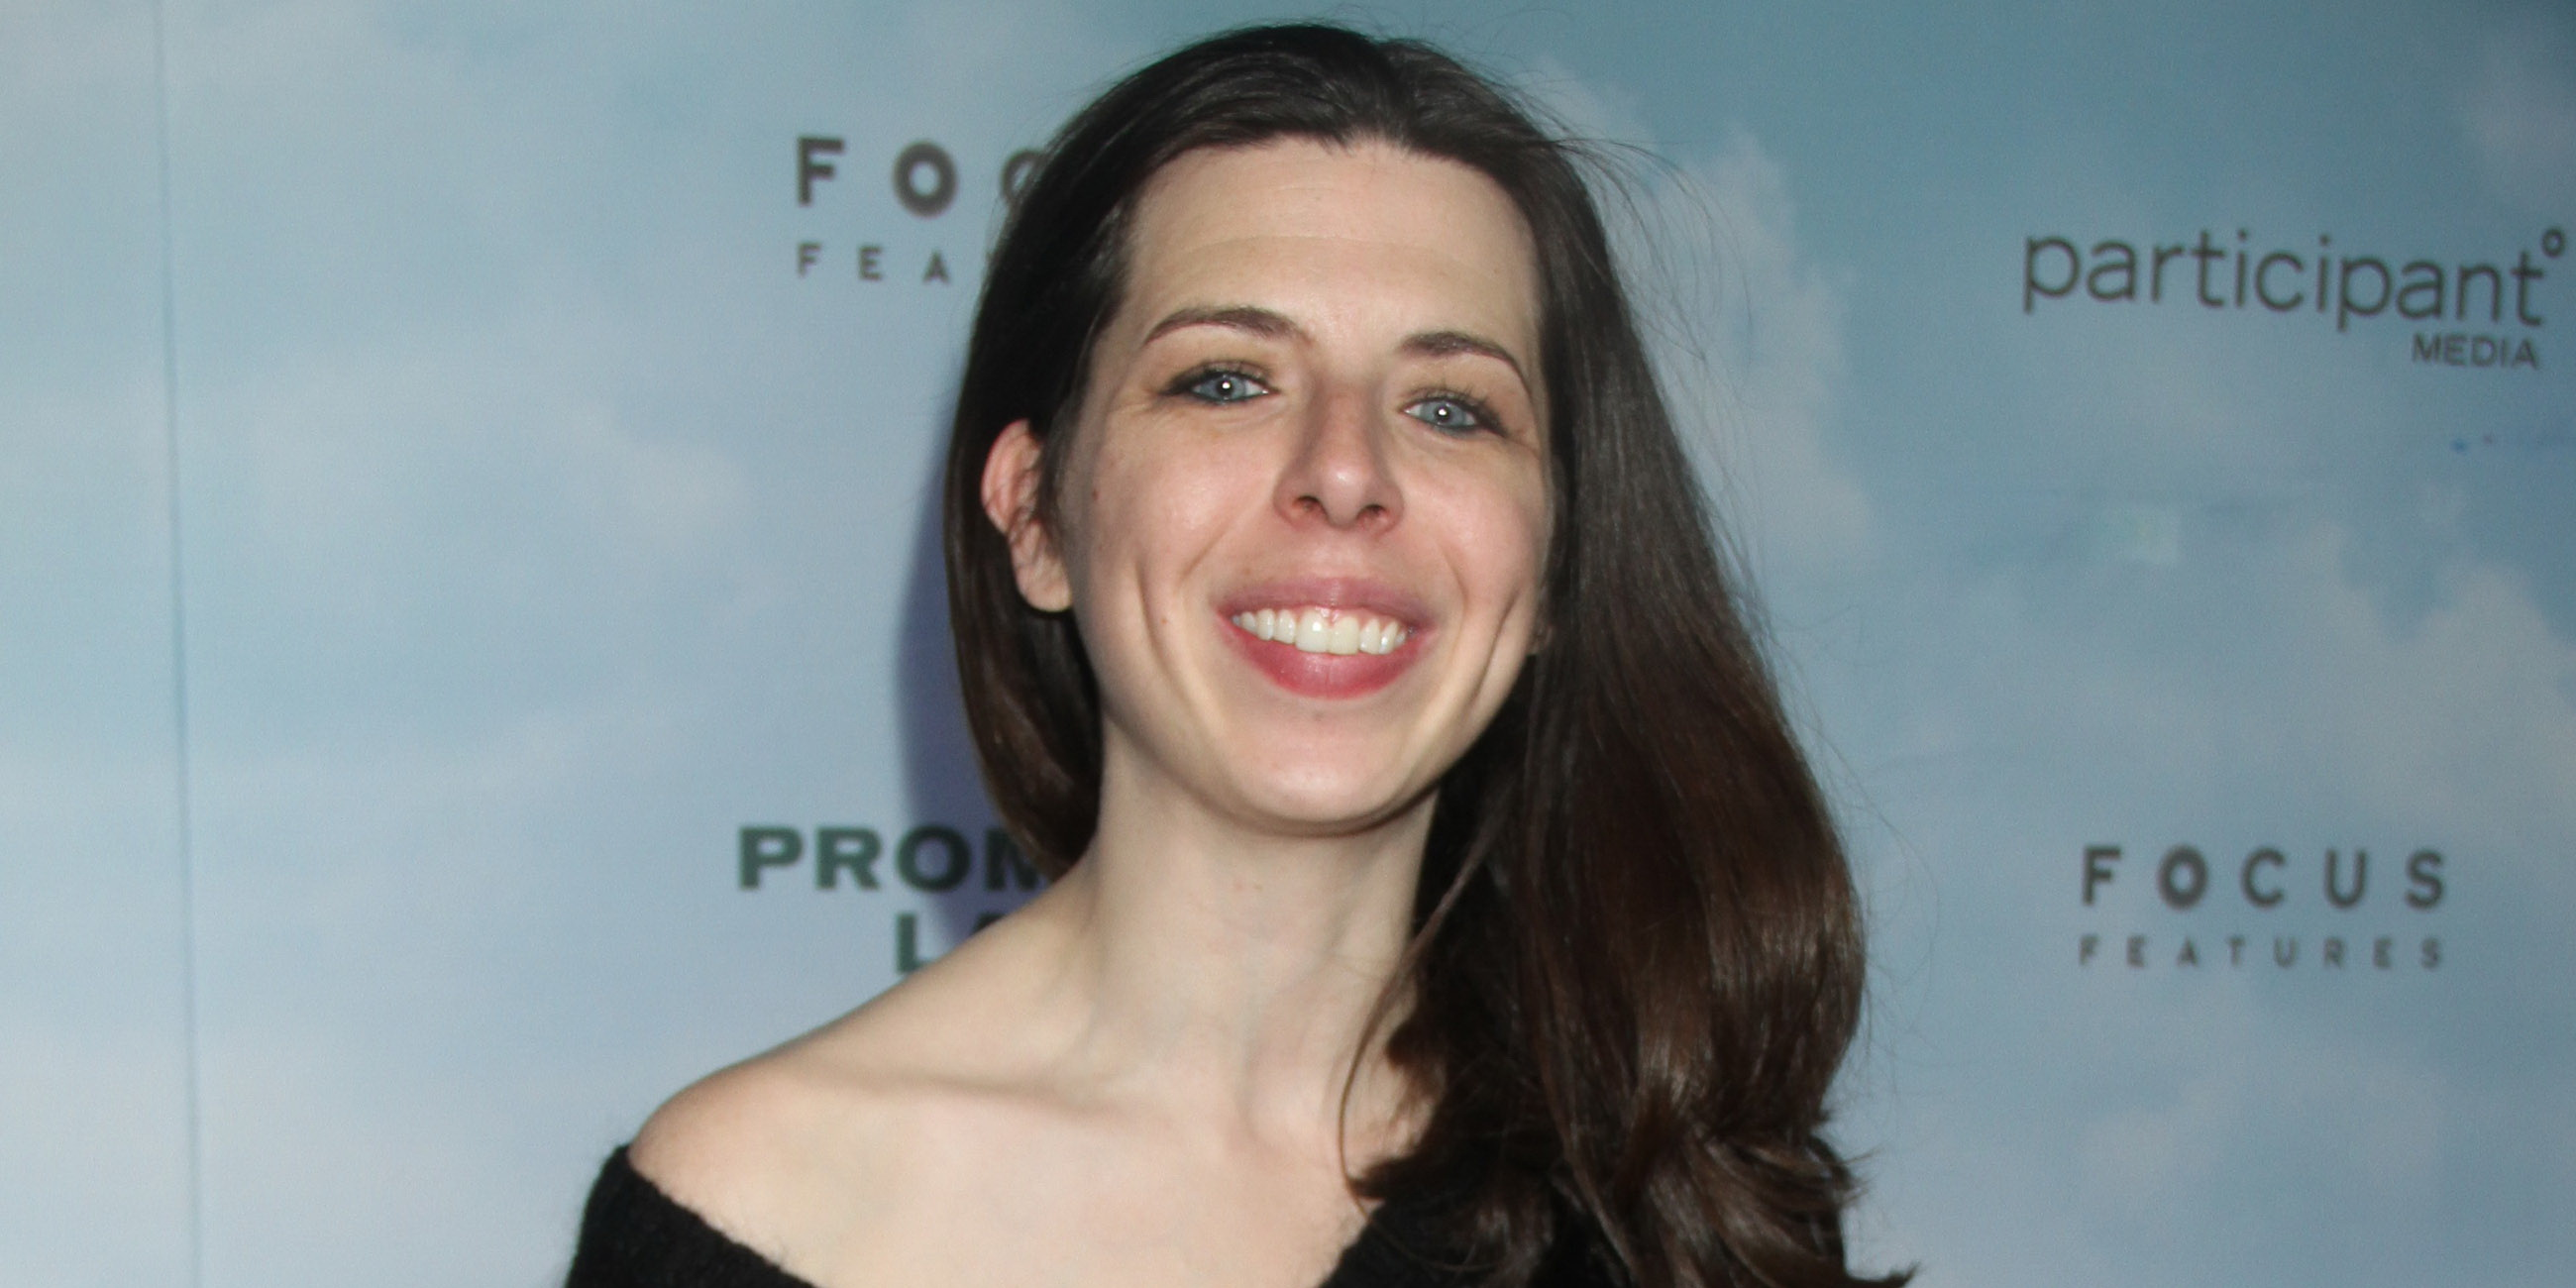 Heather matarazzo gay